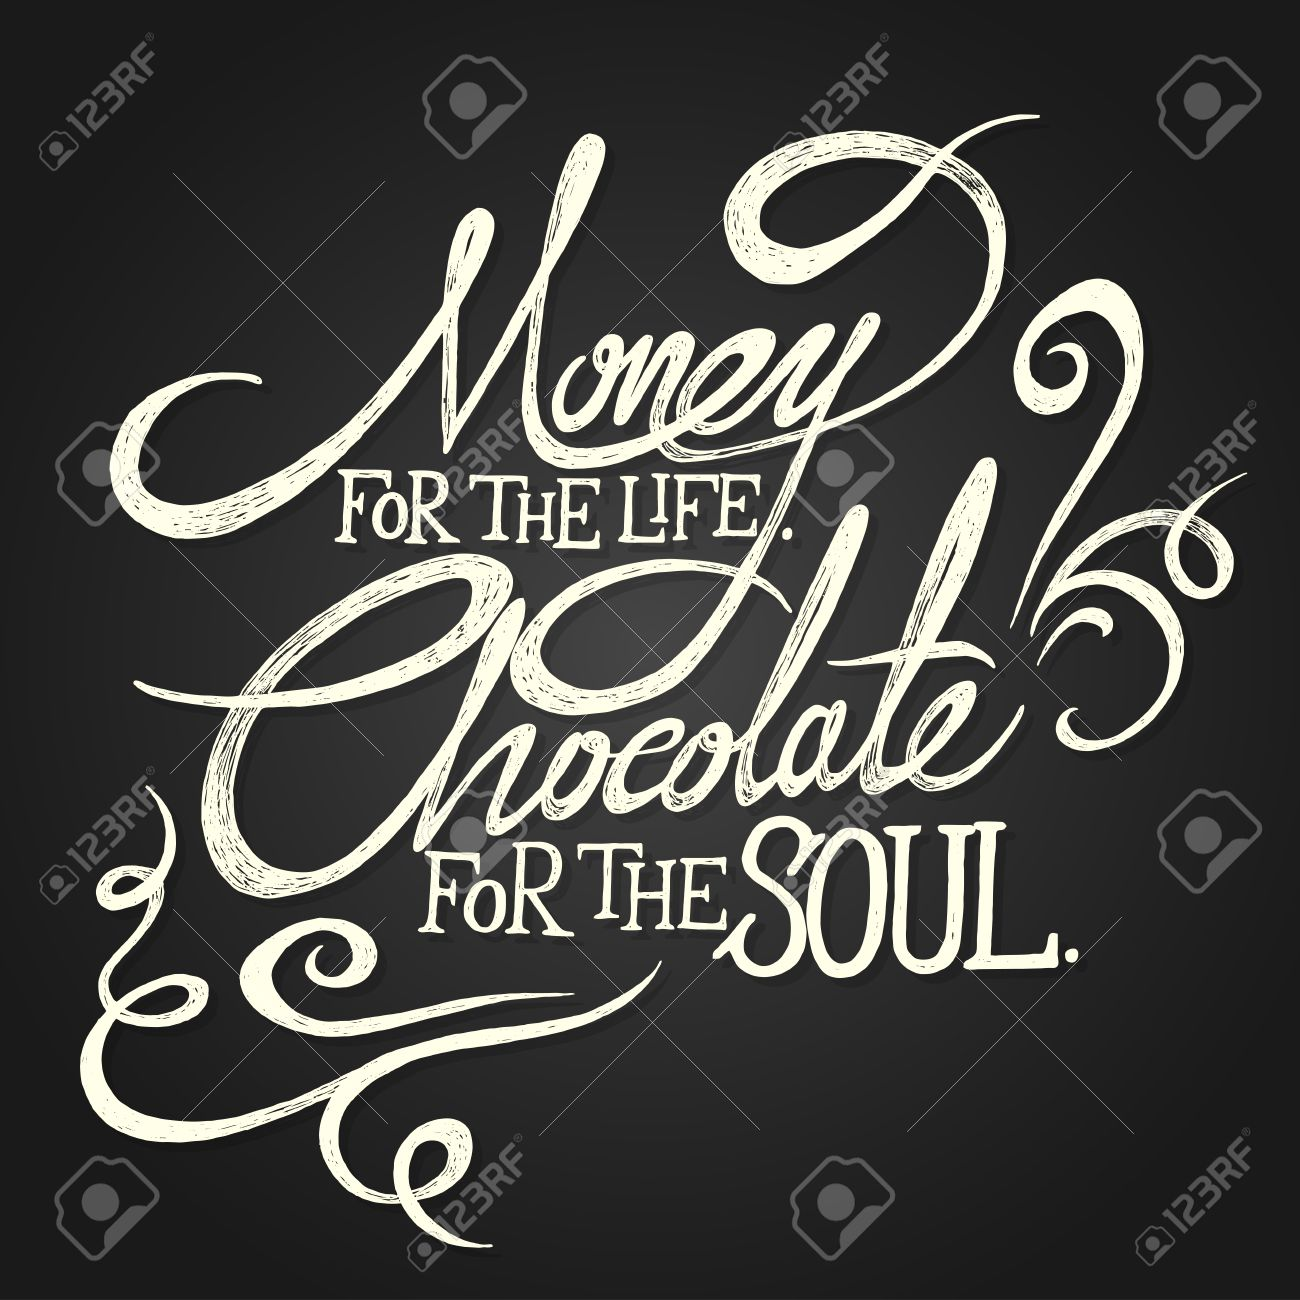 MONEY For The Life CHOCOLATE For Soul - Hand Drawn Quotes On ...